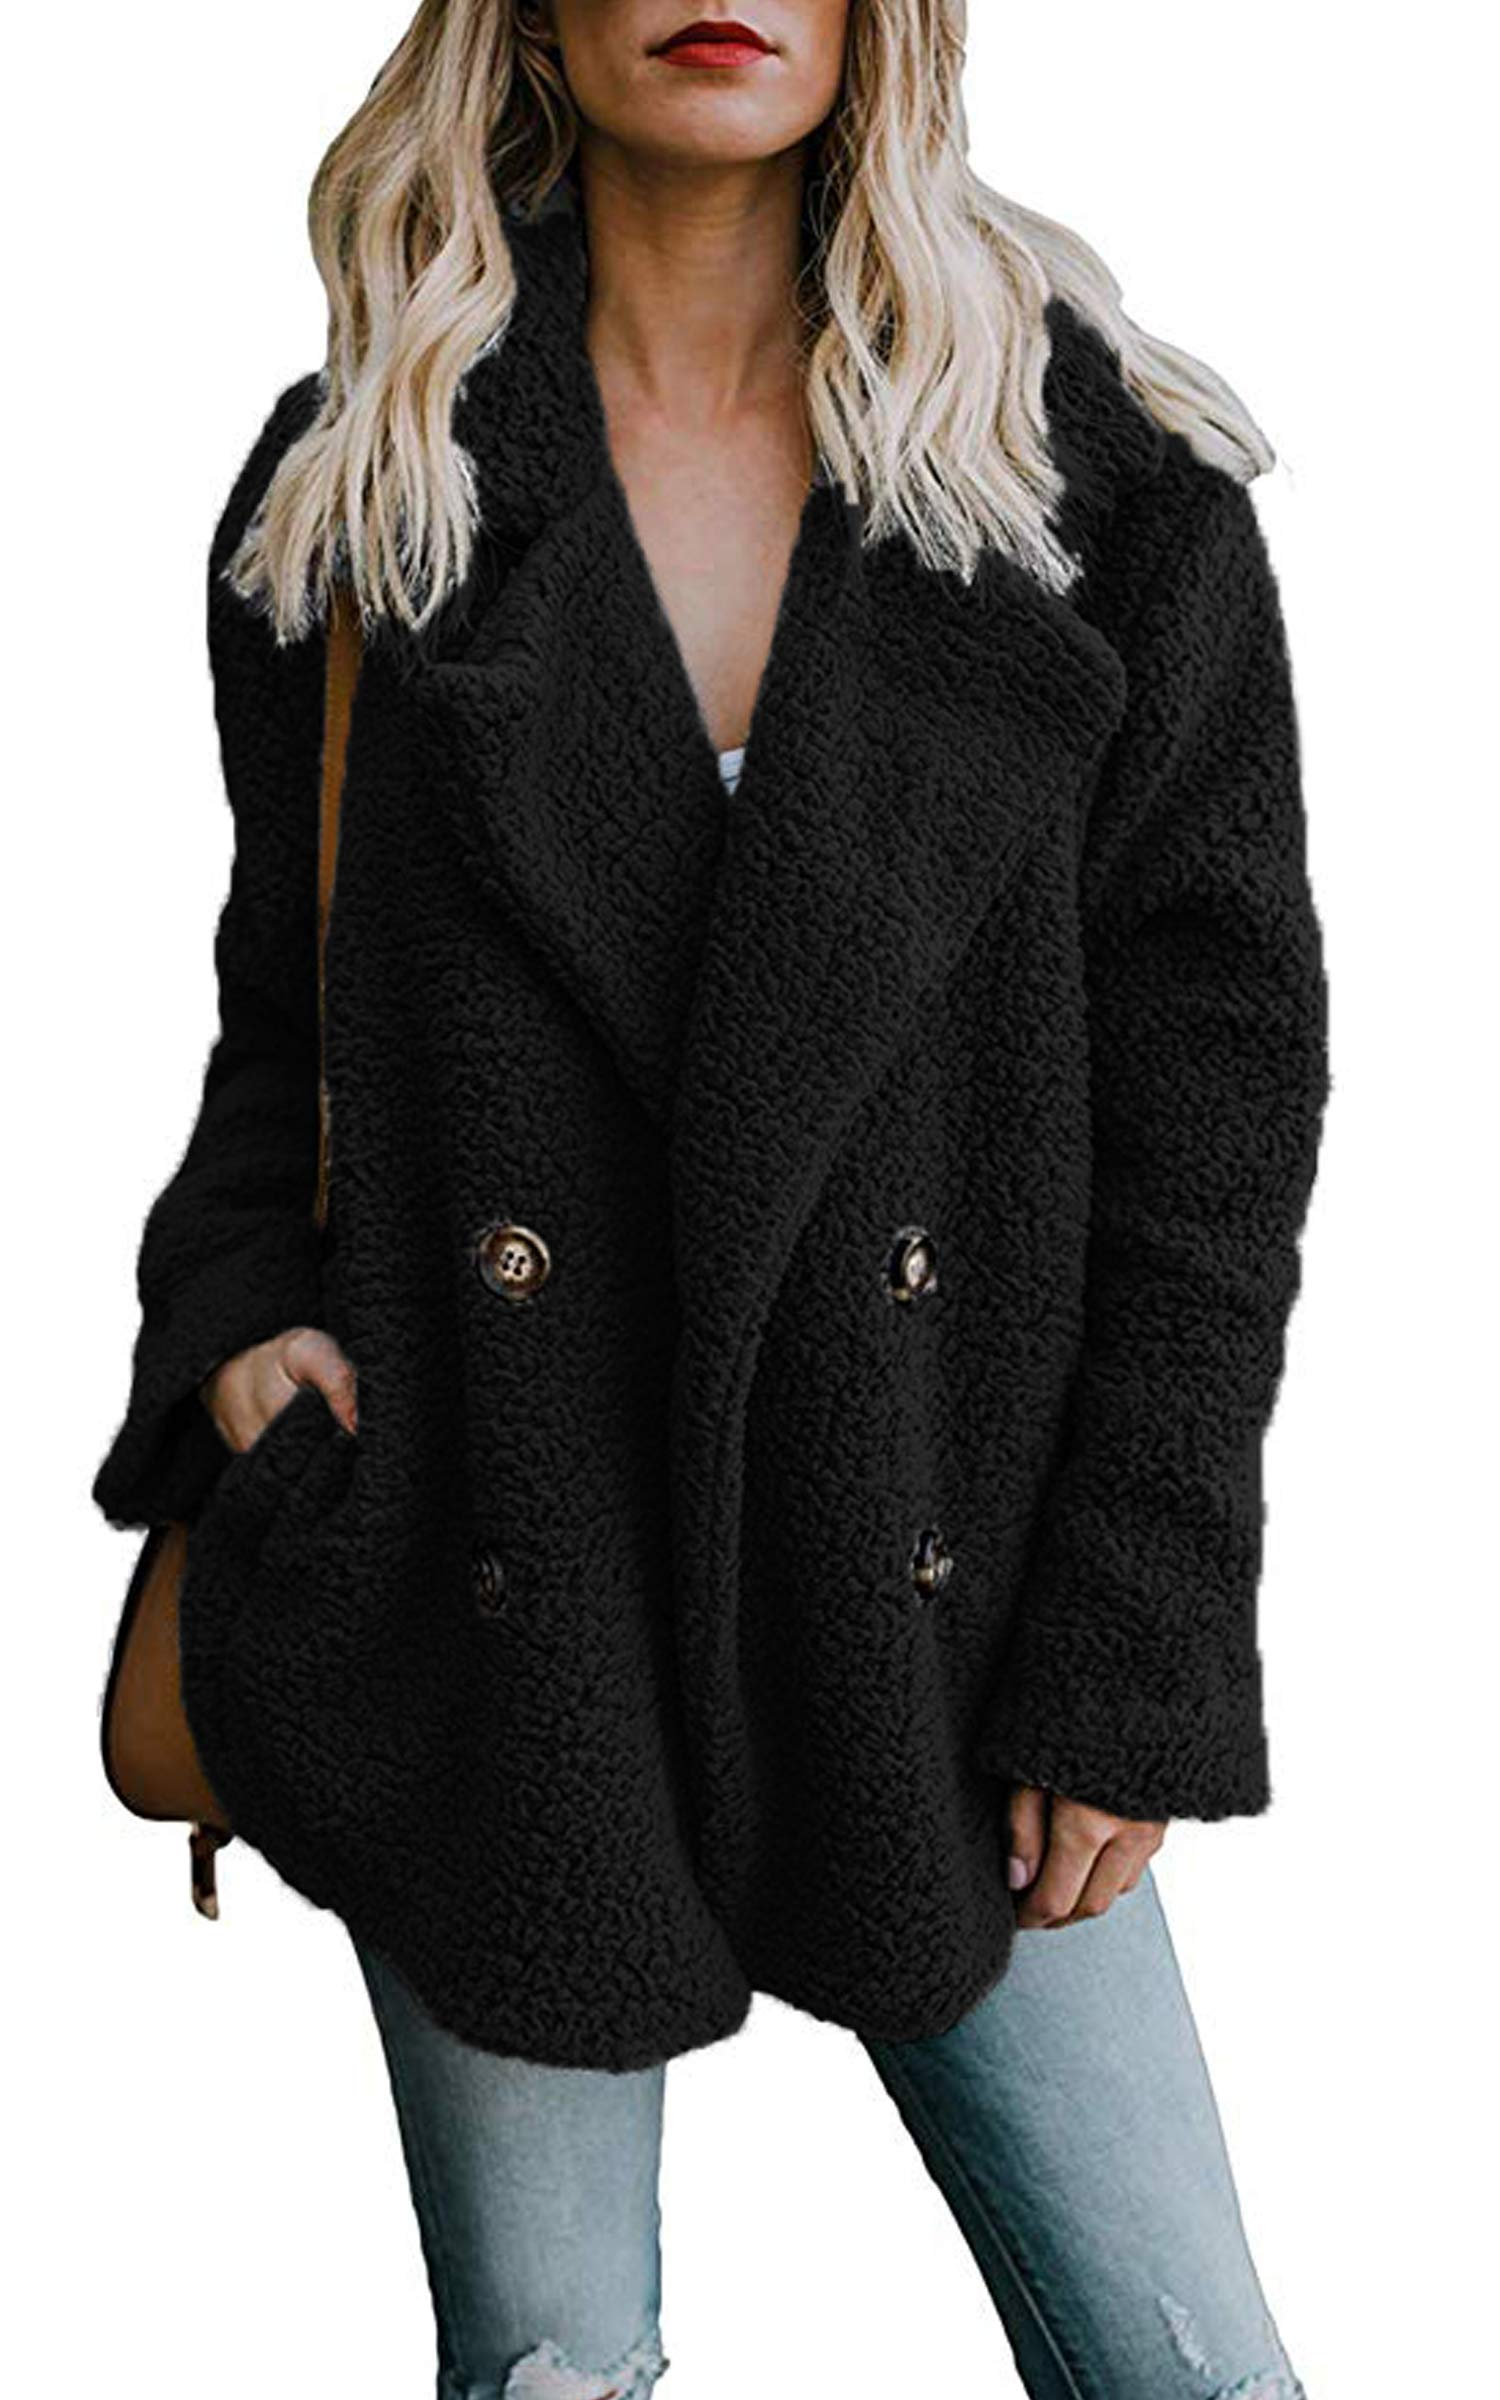 ECOWISH Womens Double Breasted Lapel Open Front Fleece Coat with Pockets Outwear Black M